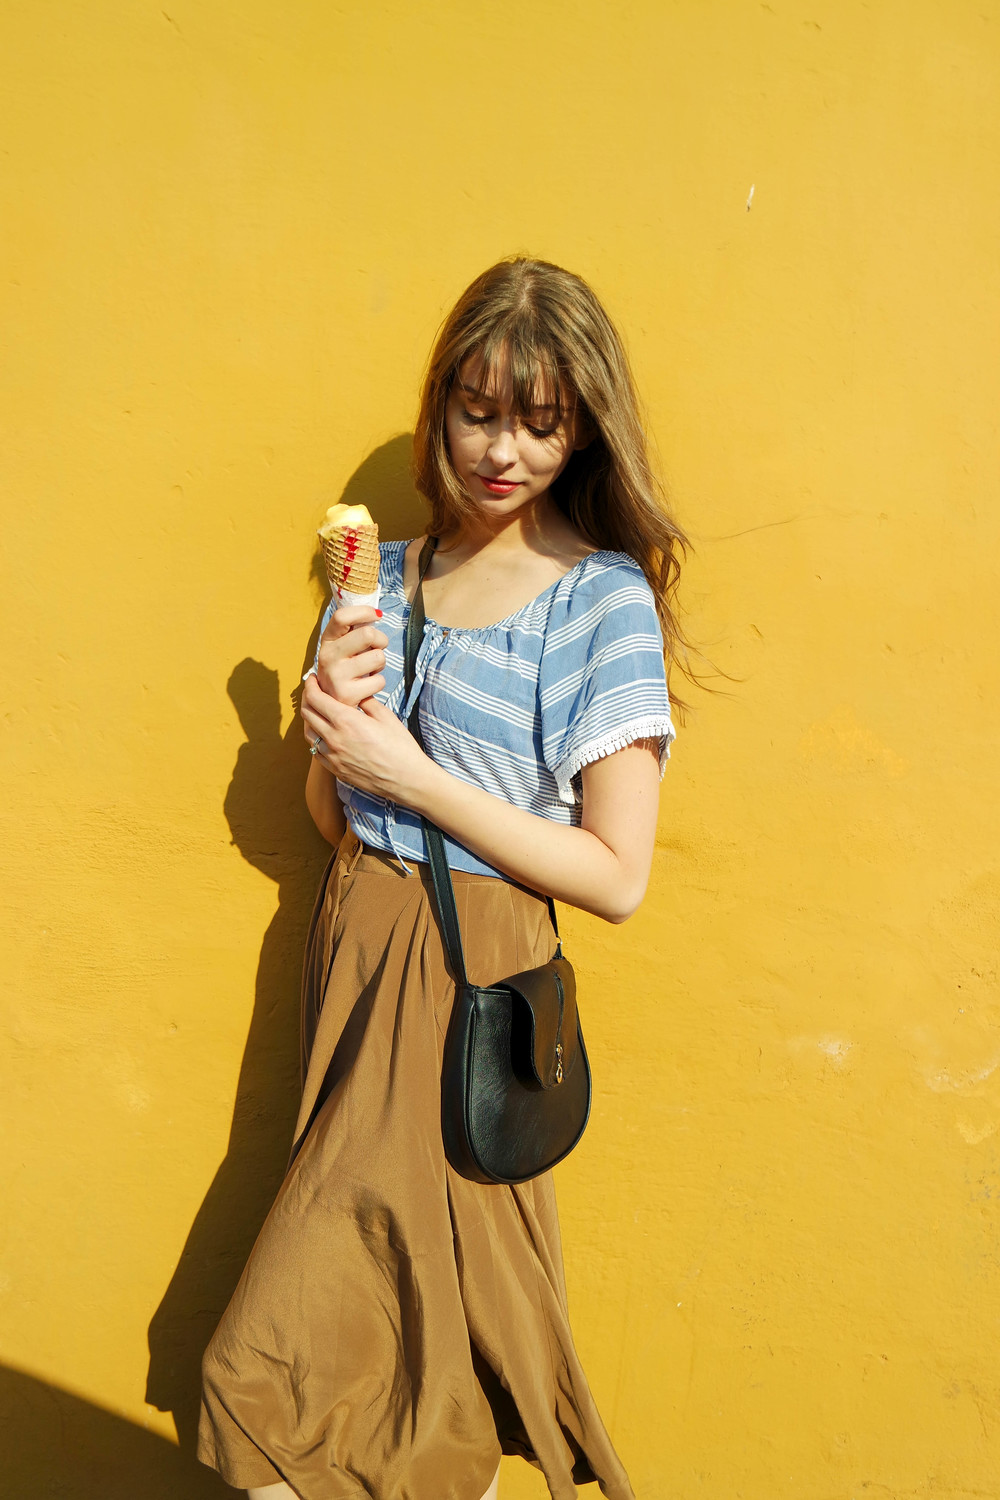 When your ice cream matches the wall, you kind of have to take a picture ;)